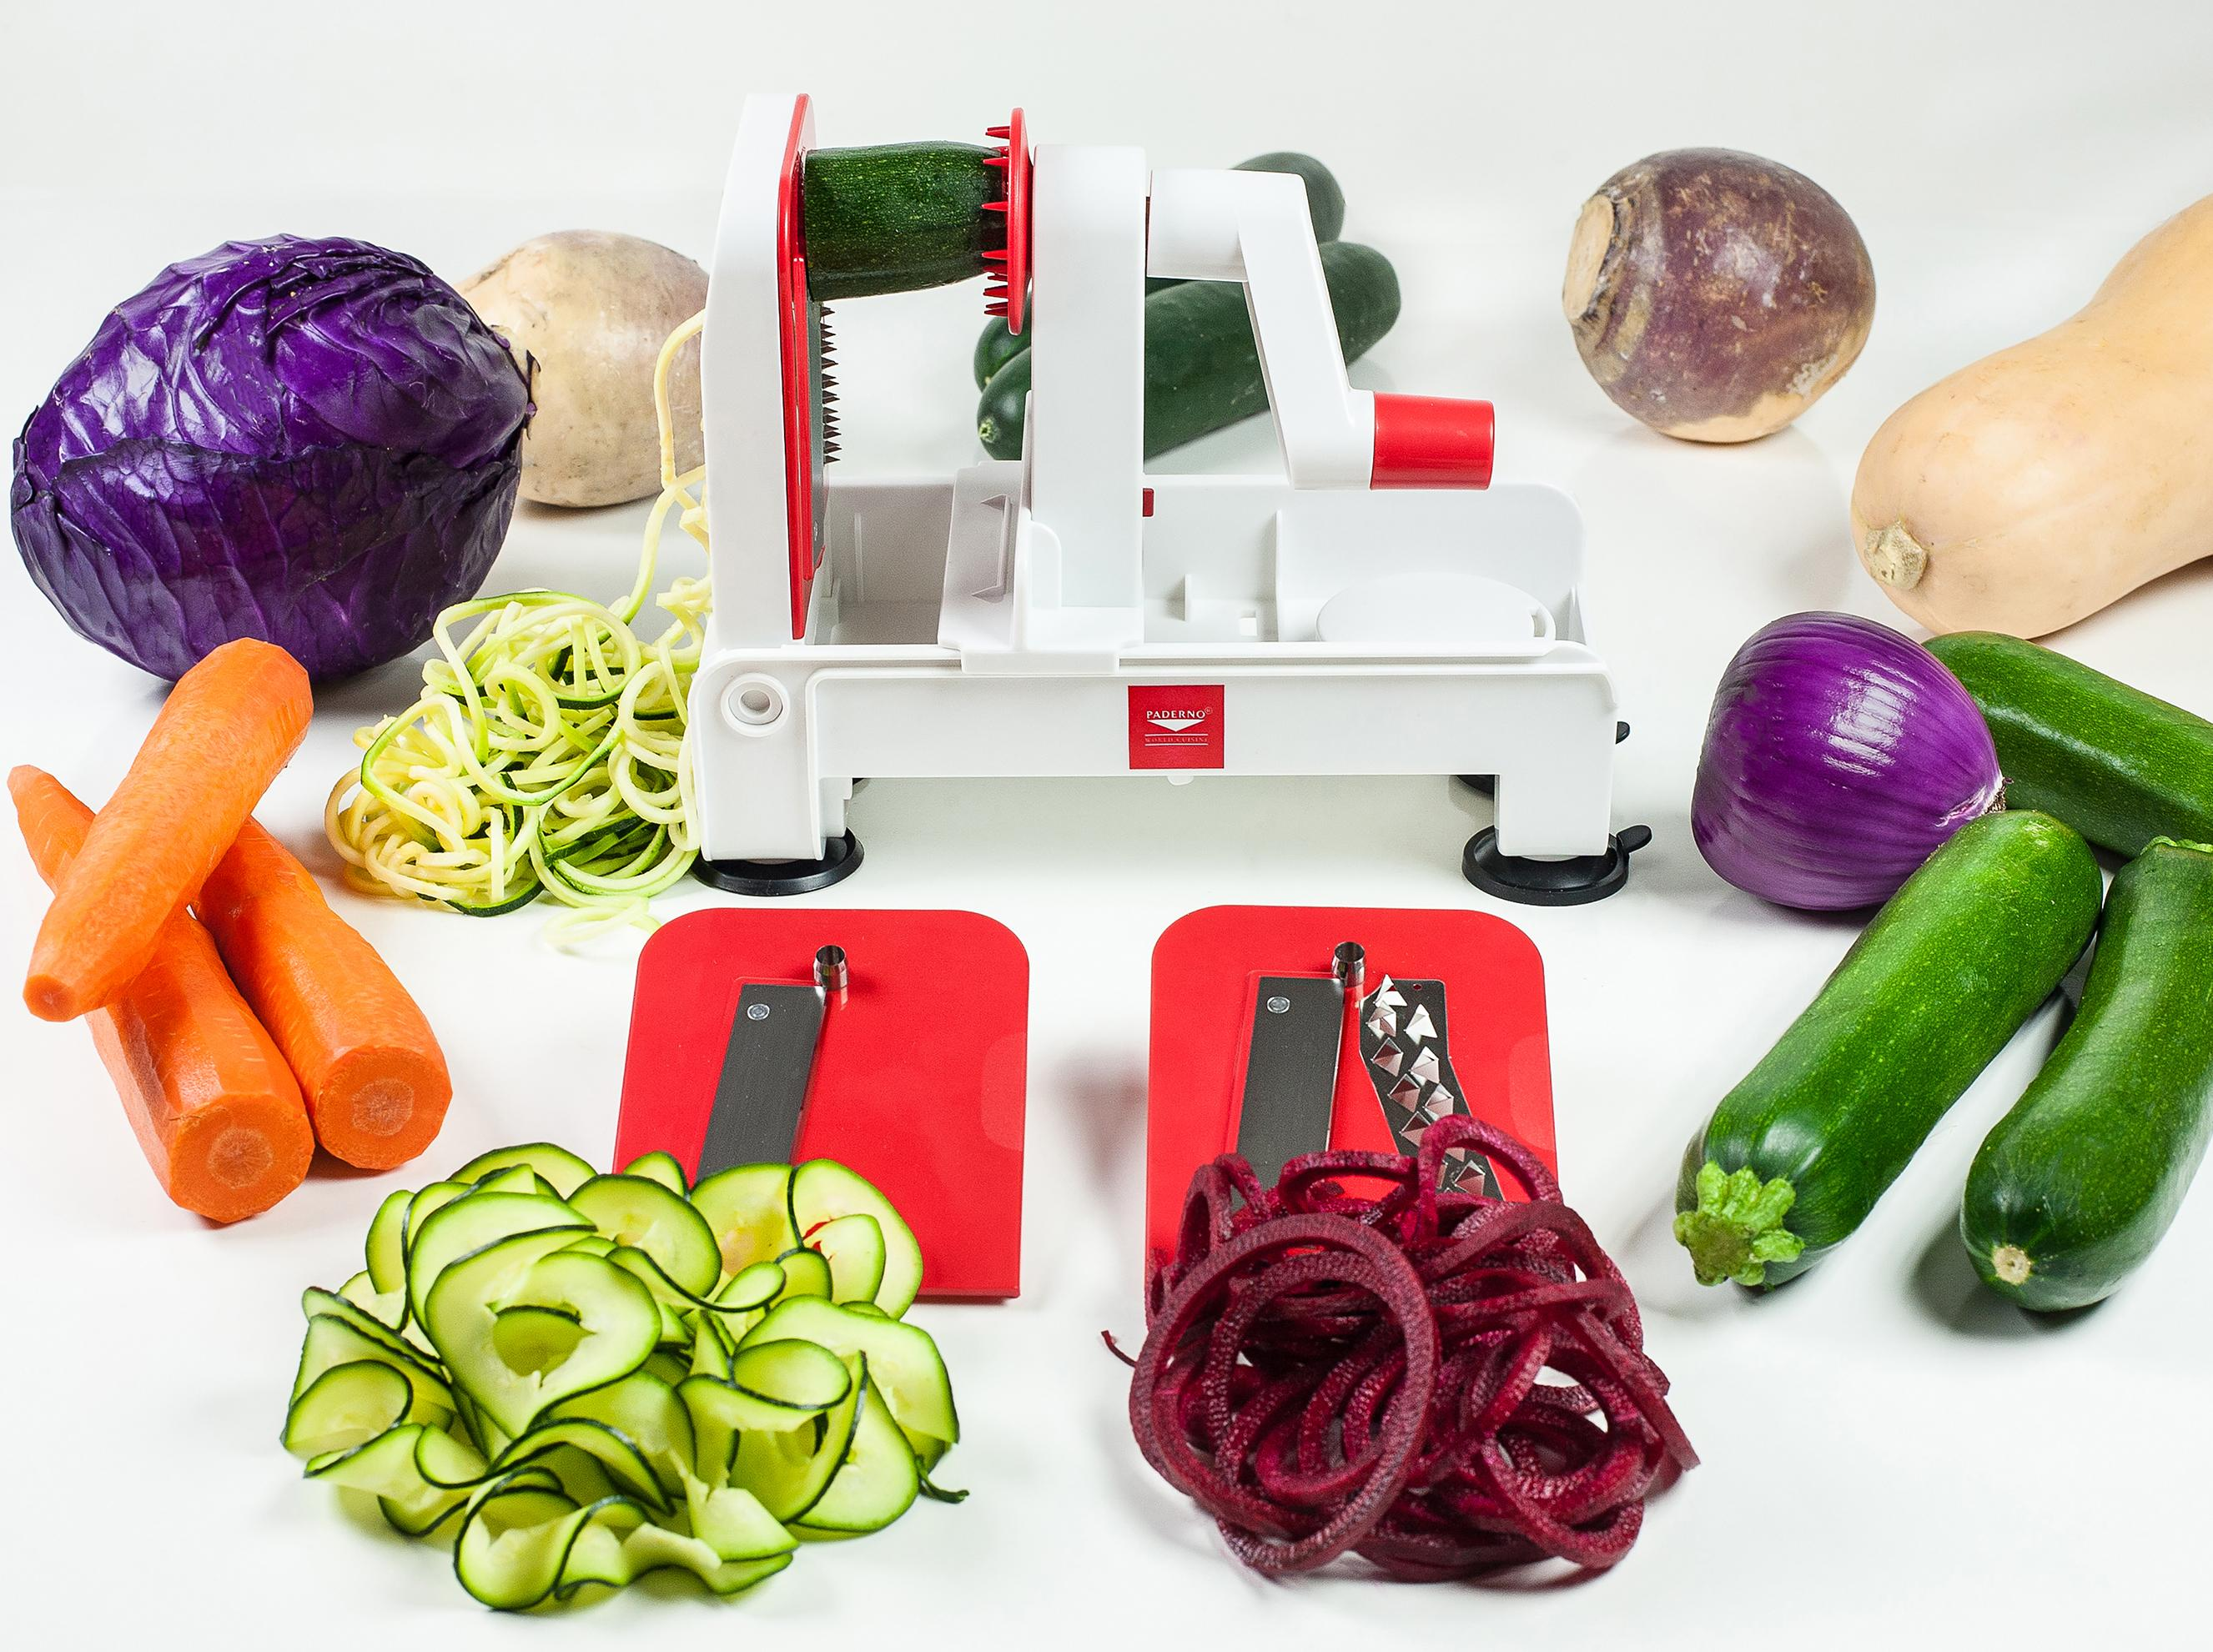 Paderno world cuisine a4982802 folding tri blade - Paderno world cuisine spiral vegetable slicer ...